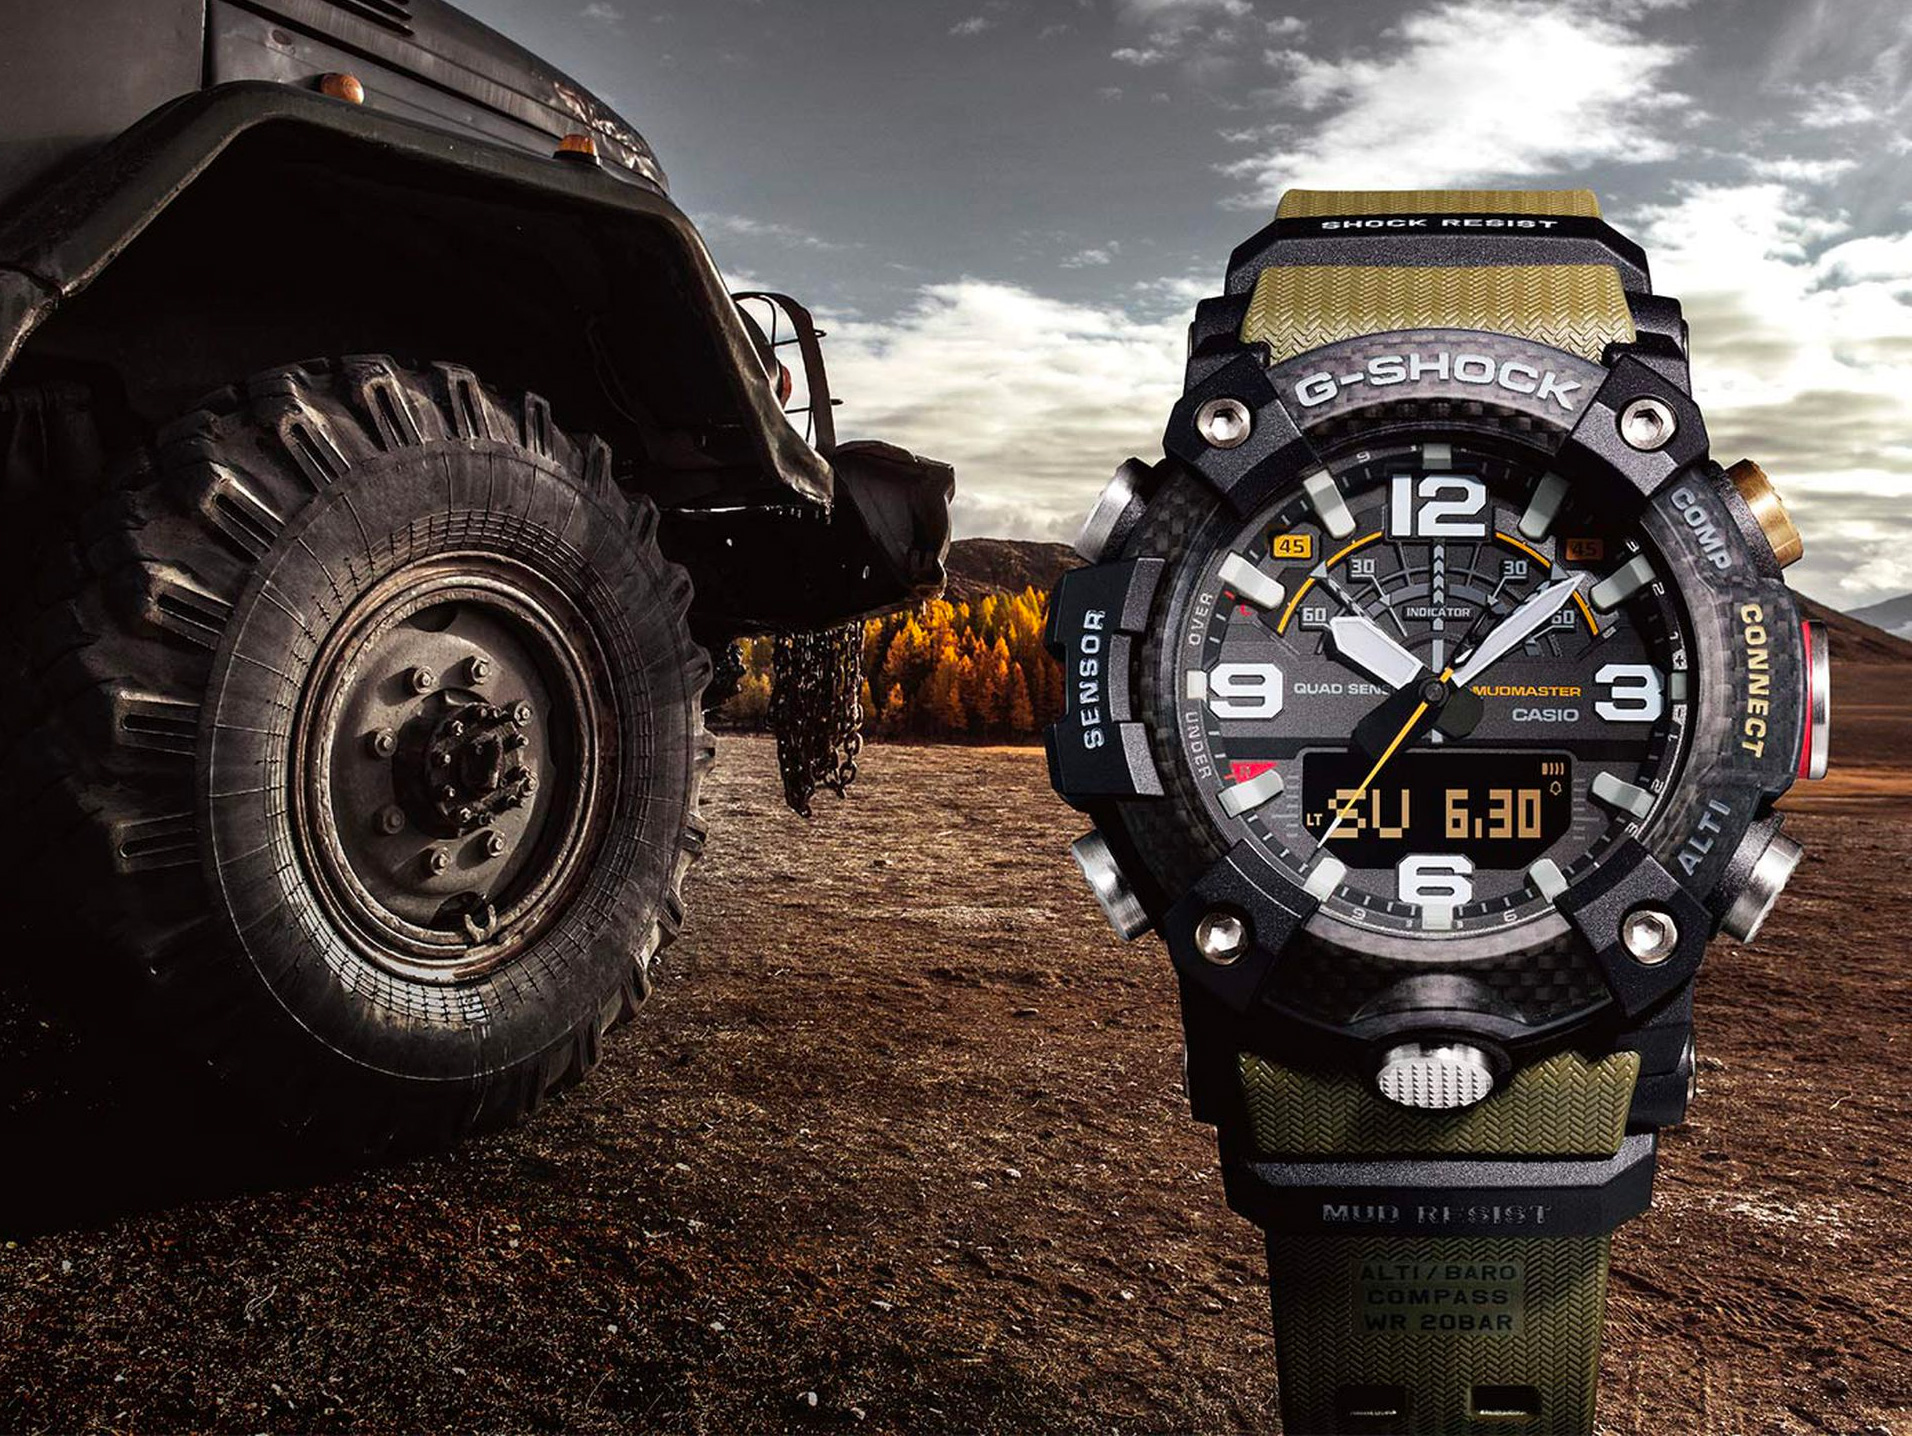 The G-Shock Mudmaster GG-B100 is Built for Extreme Adventure at werd.com